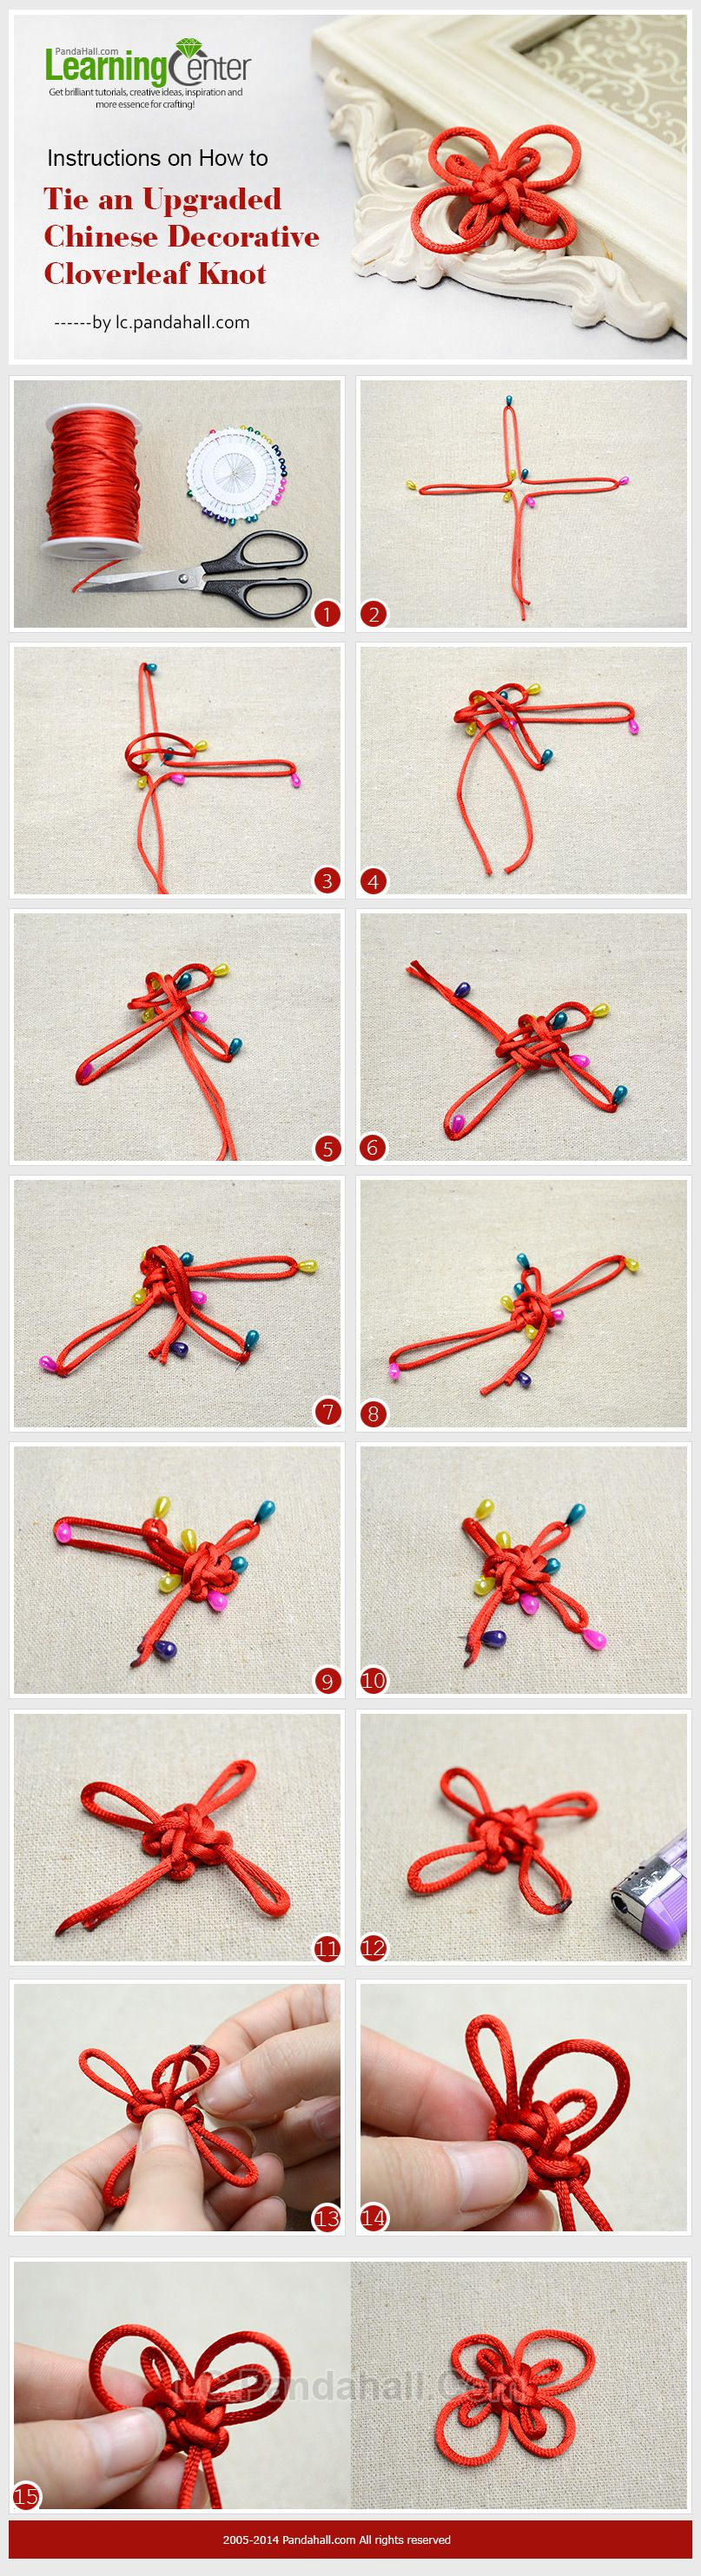 Instructions On How To Tie An Upgraded Chinese Decorative Cloverleaf